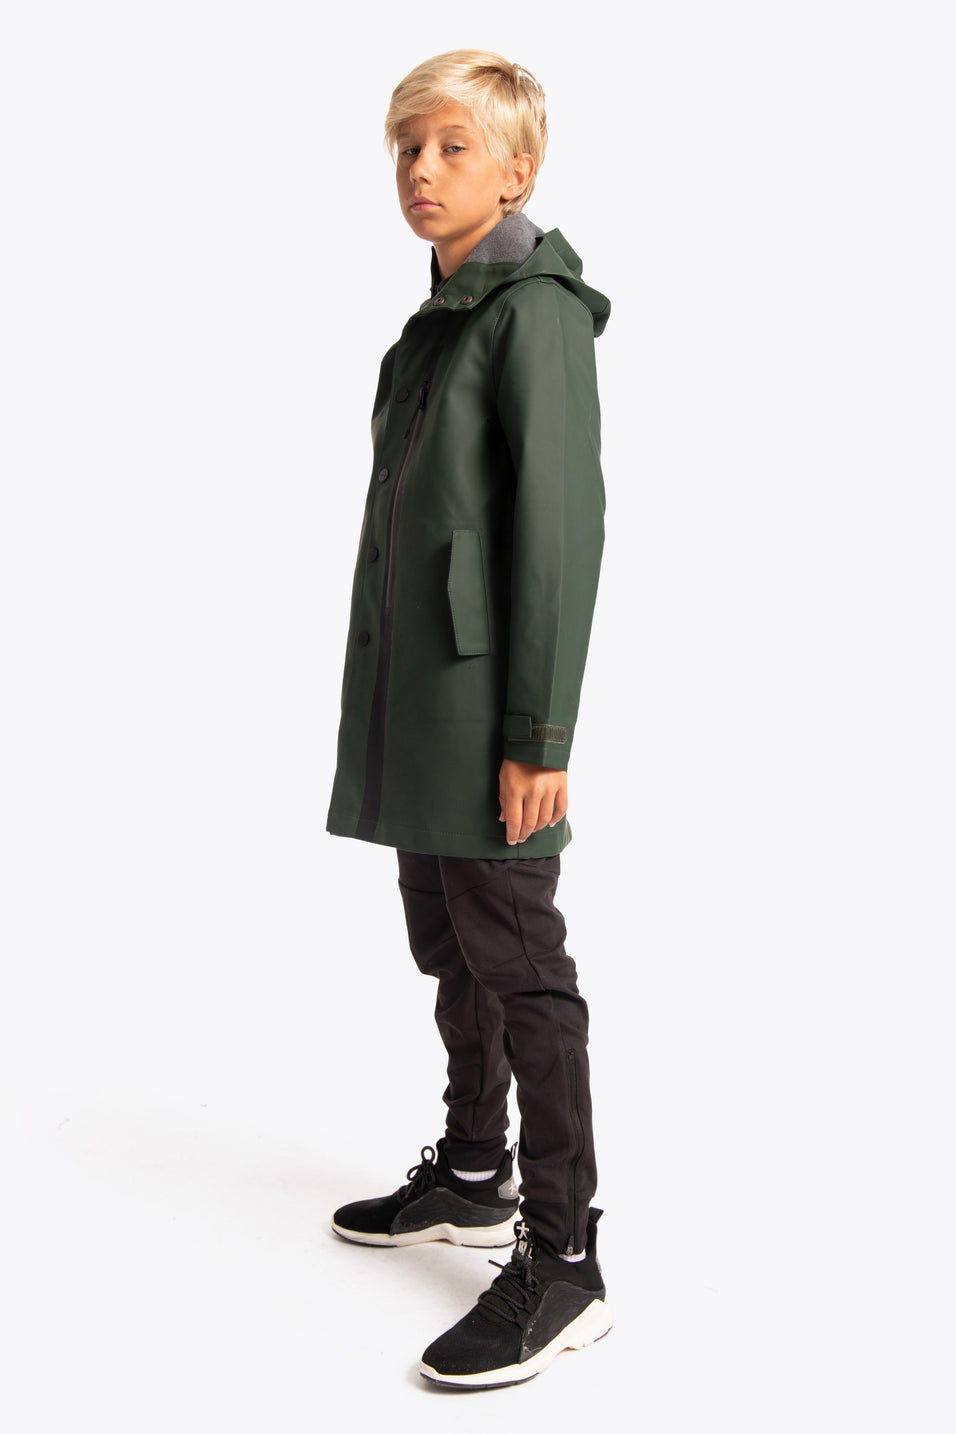 Osaka Kids Rain Coat - Forest Green